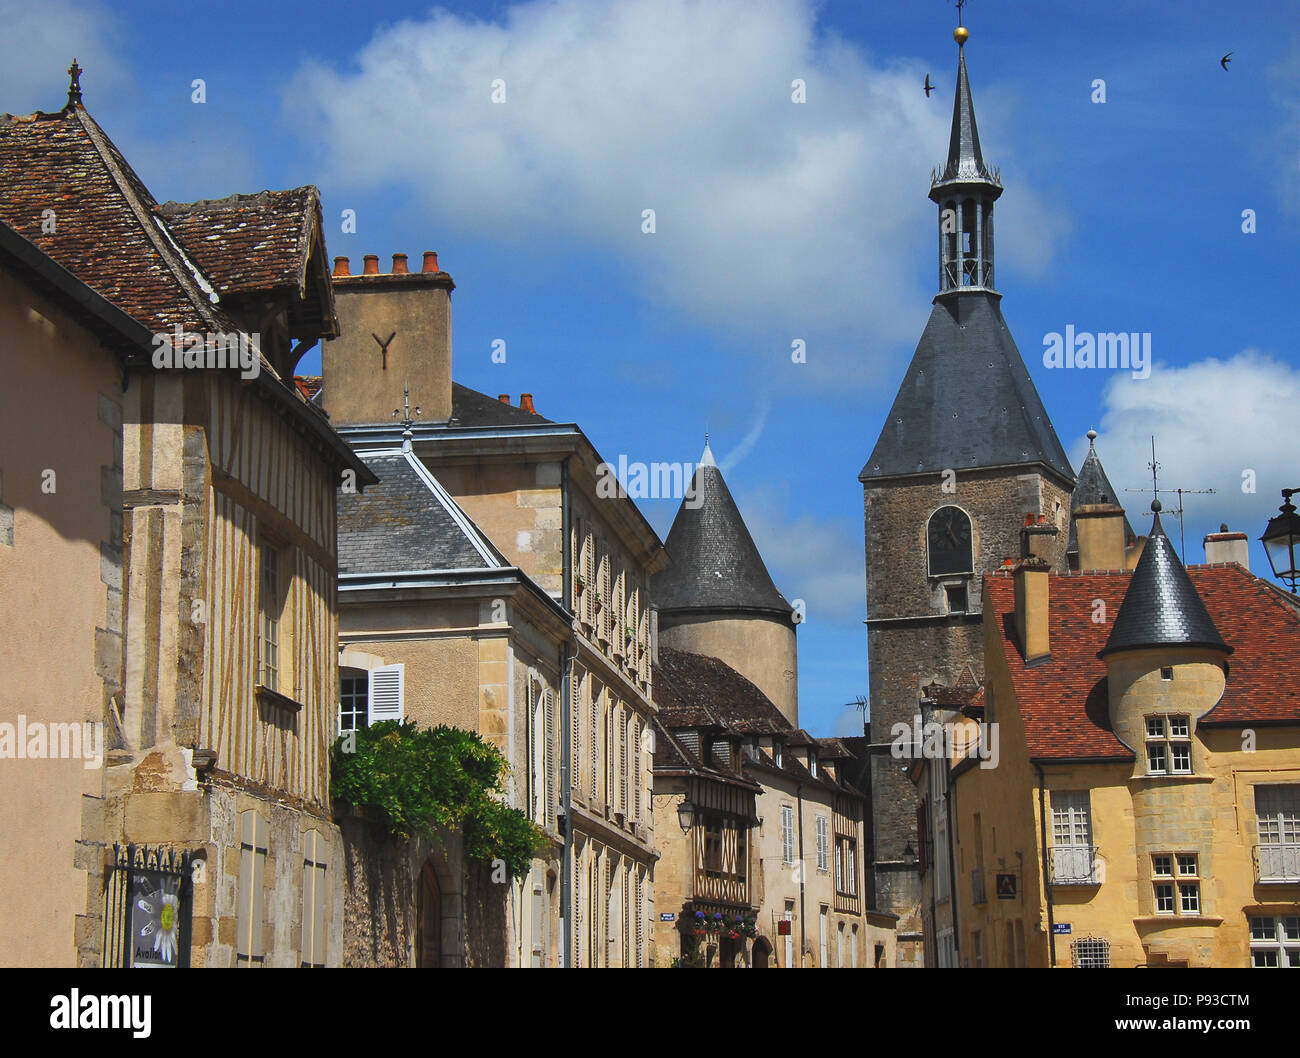 A street in the most ancient and historic part of the charming village of Medieval Avallon in Burgundy, France. - Stock Image